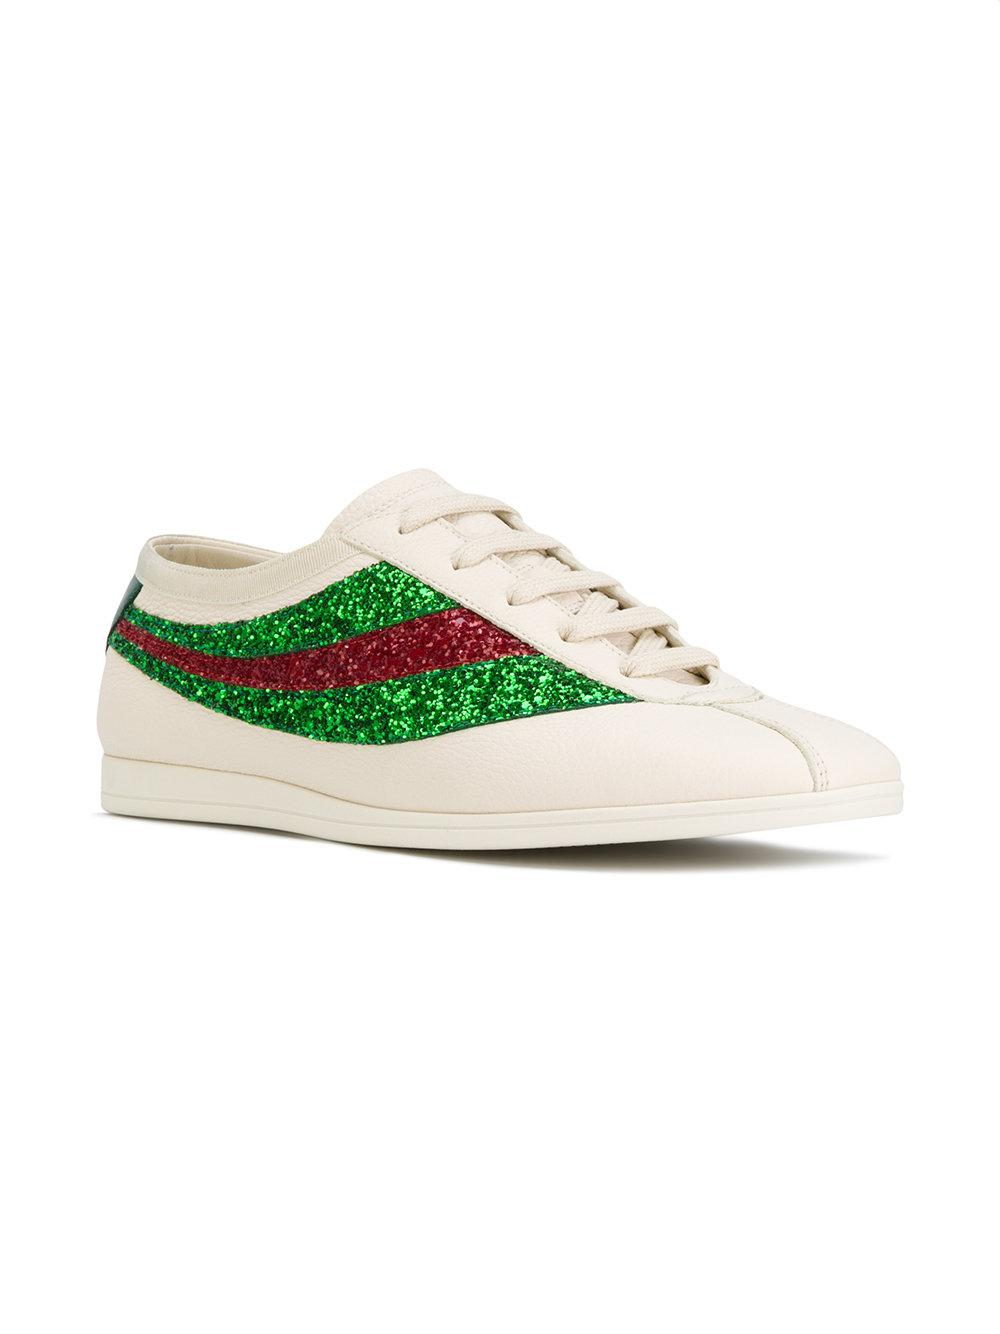 1600da04a5a Lyst - Gucci Falacer Sneakers With Sequinned Web in White for Men